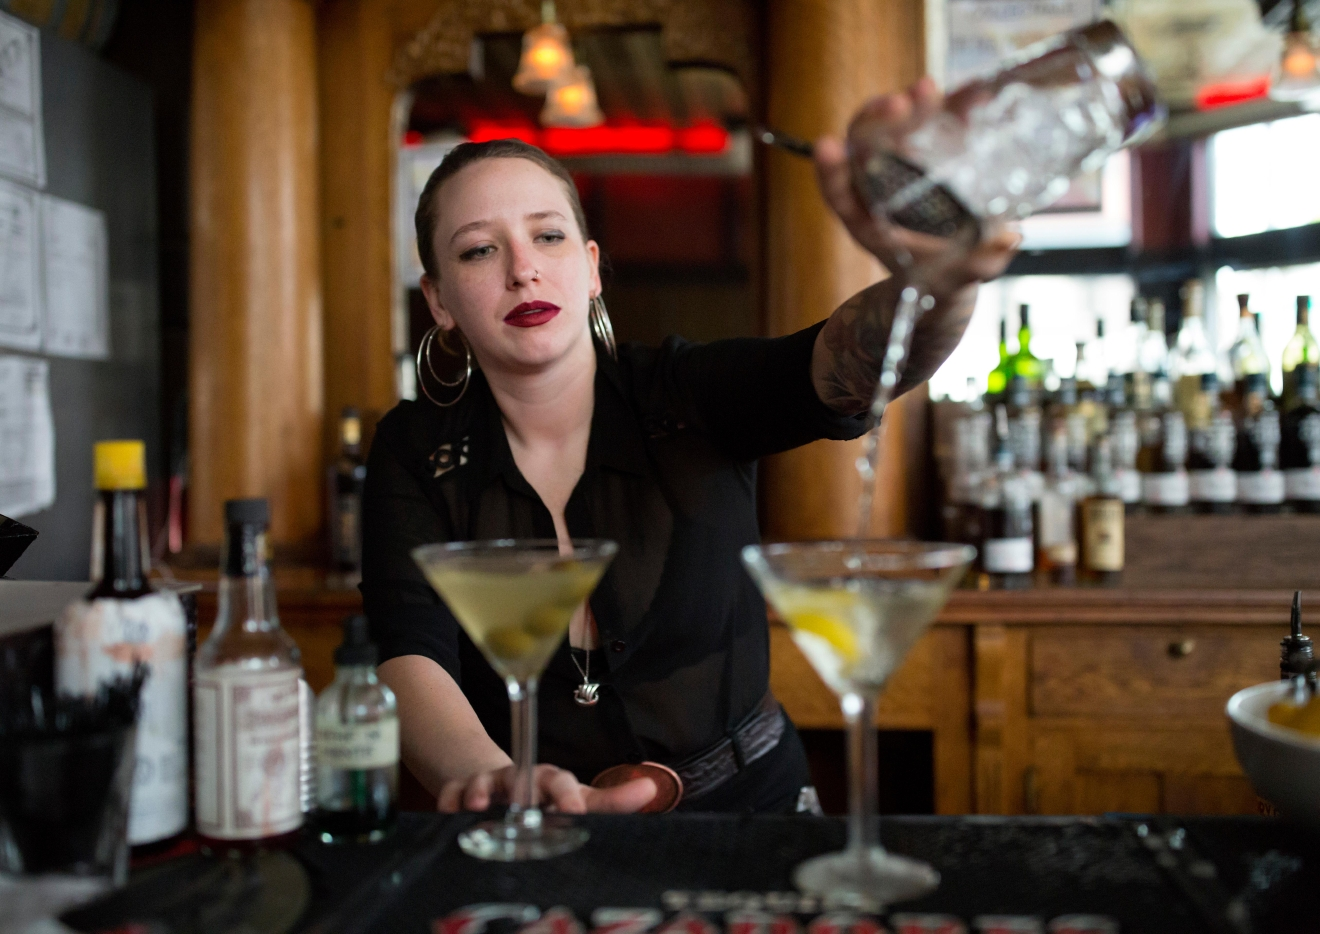 Meghan West, who has only been bartending at Tini Bigs Lounge for a year, pours martinis during the bar's final day of business. (Sy Bean / Seattle Refined)